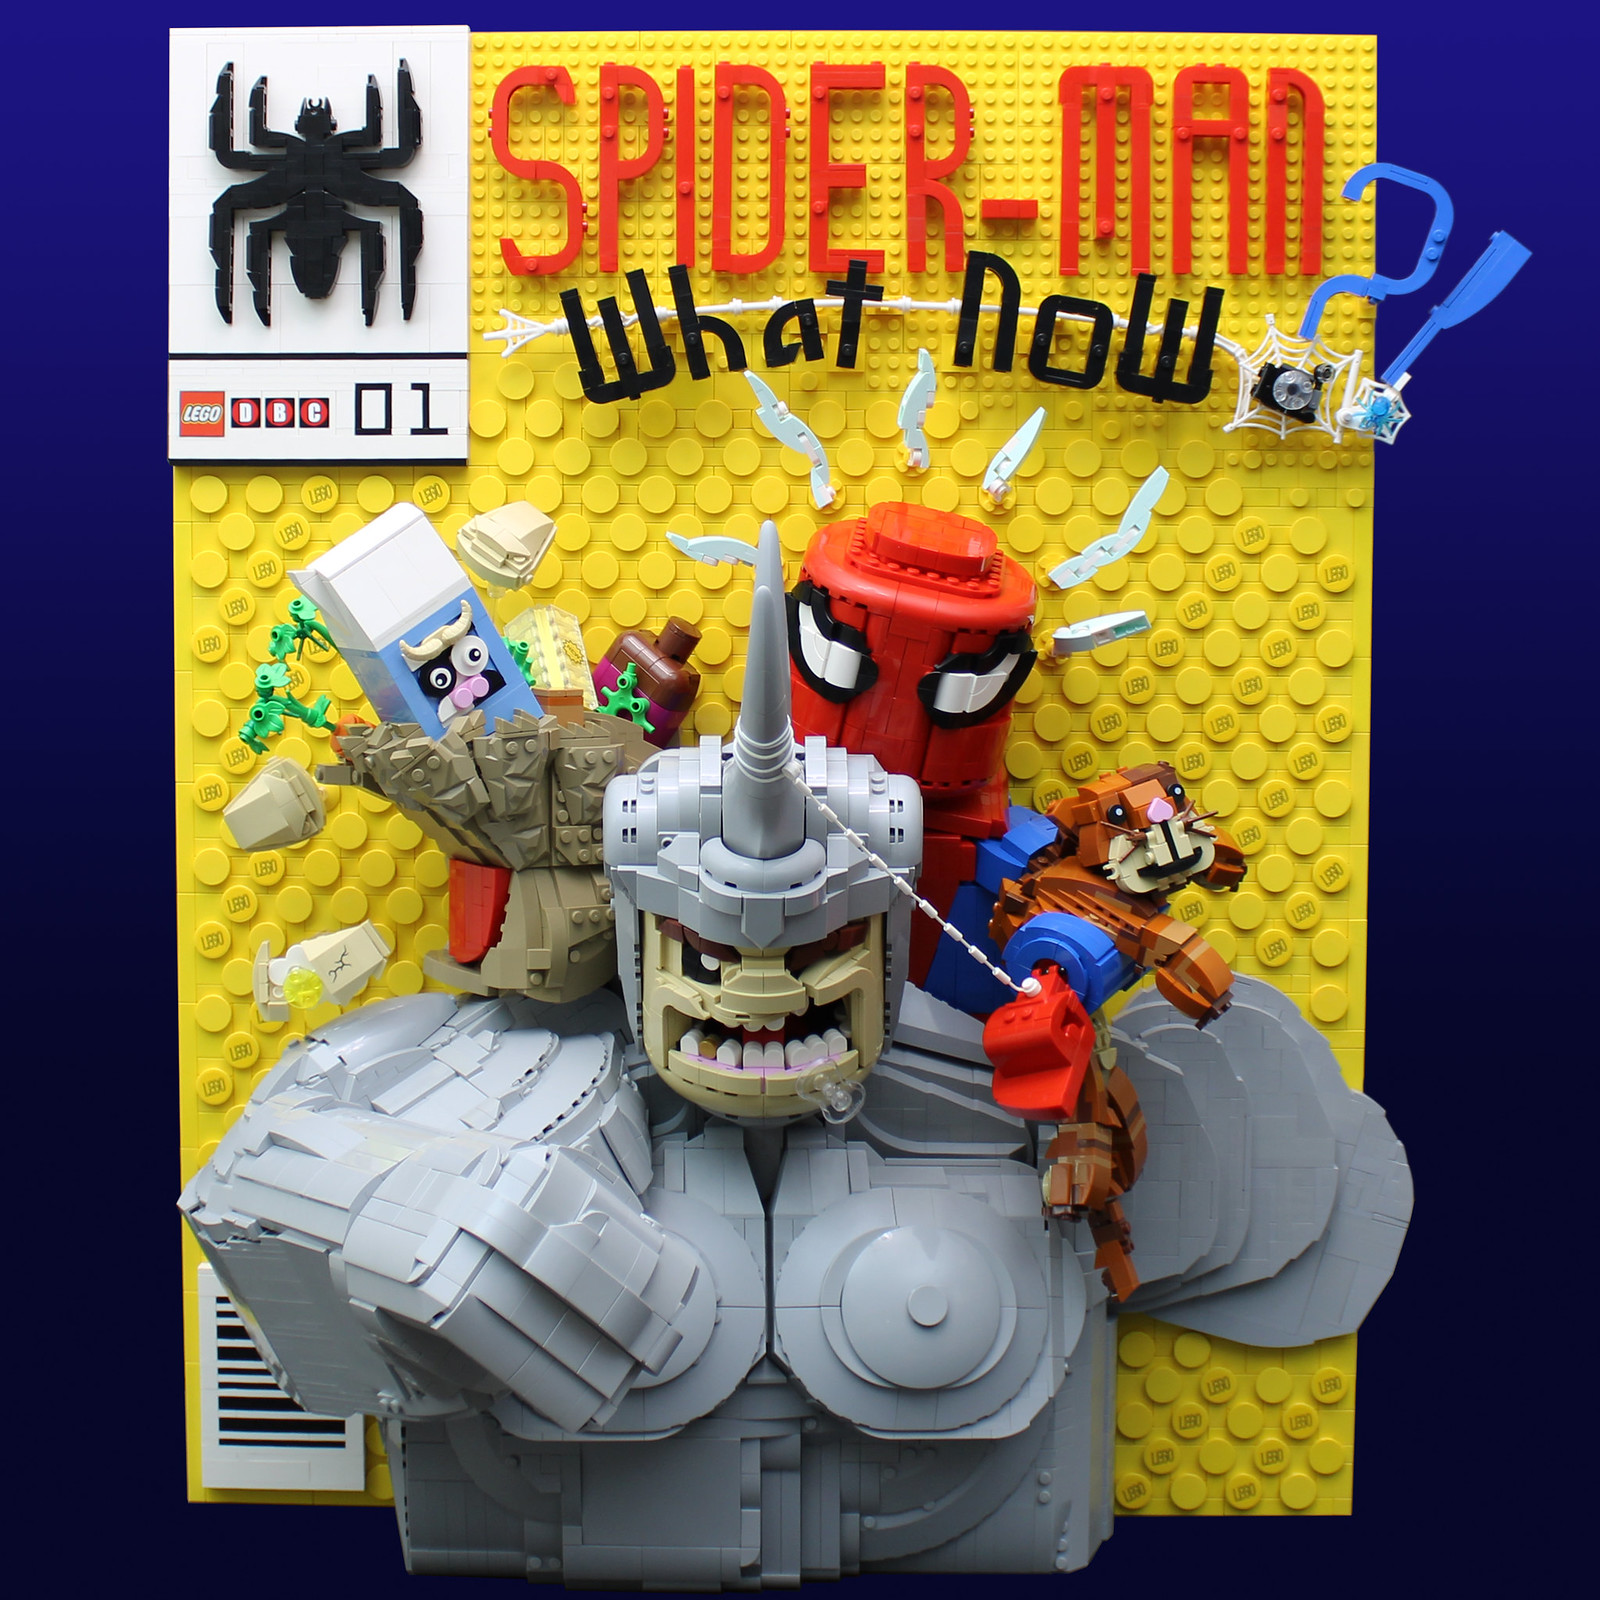 Spider-Man: What Now?!